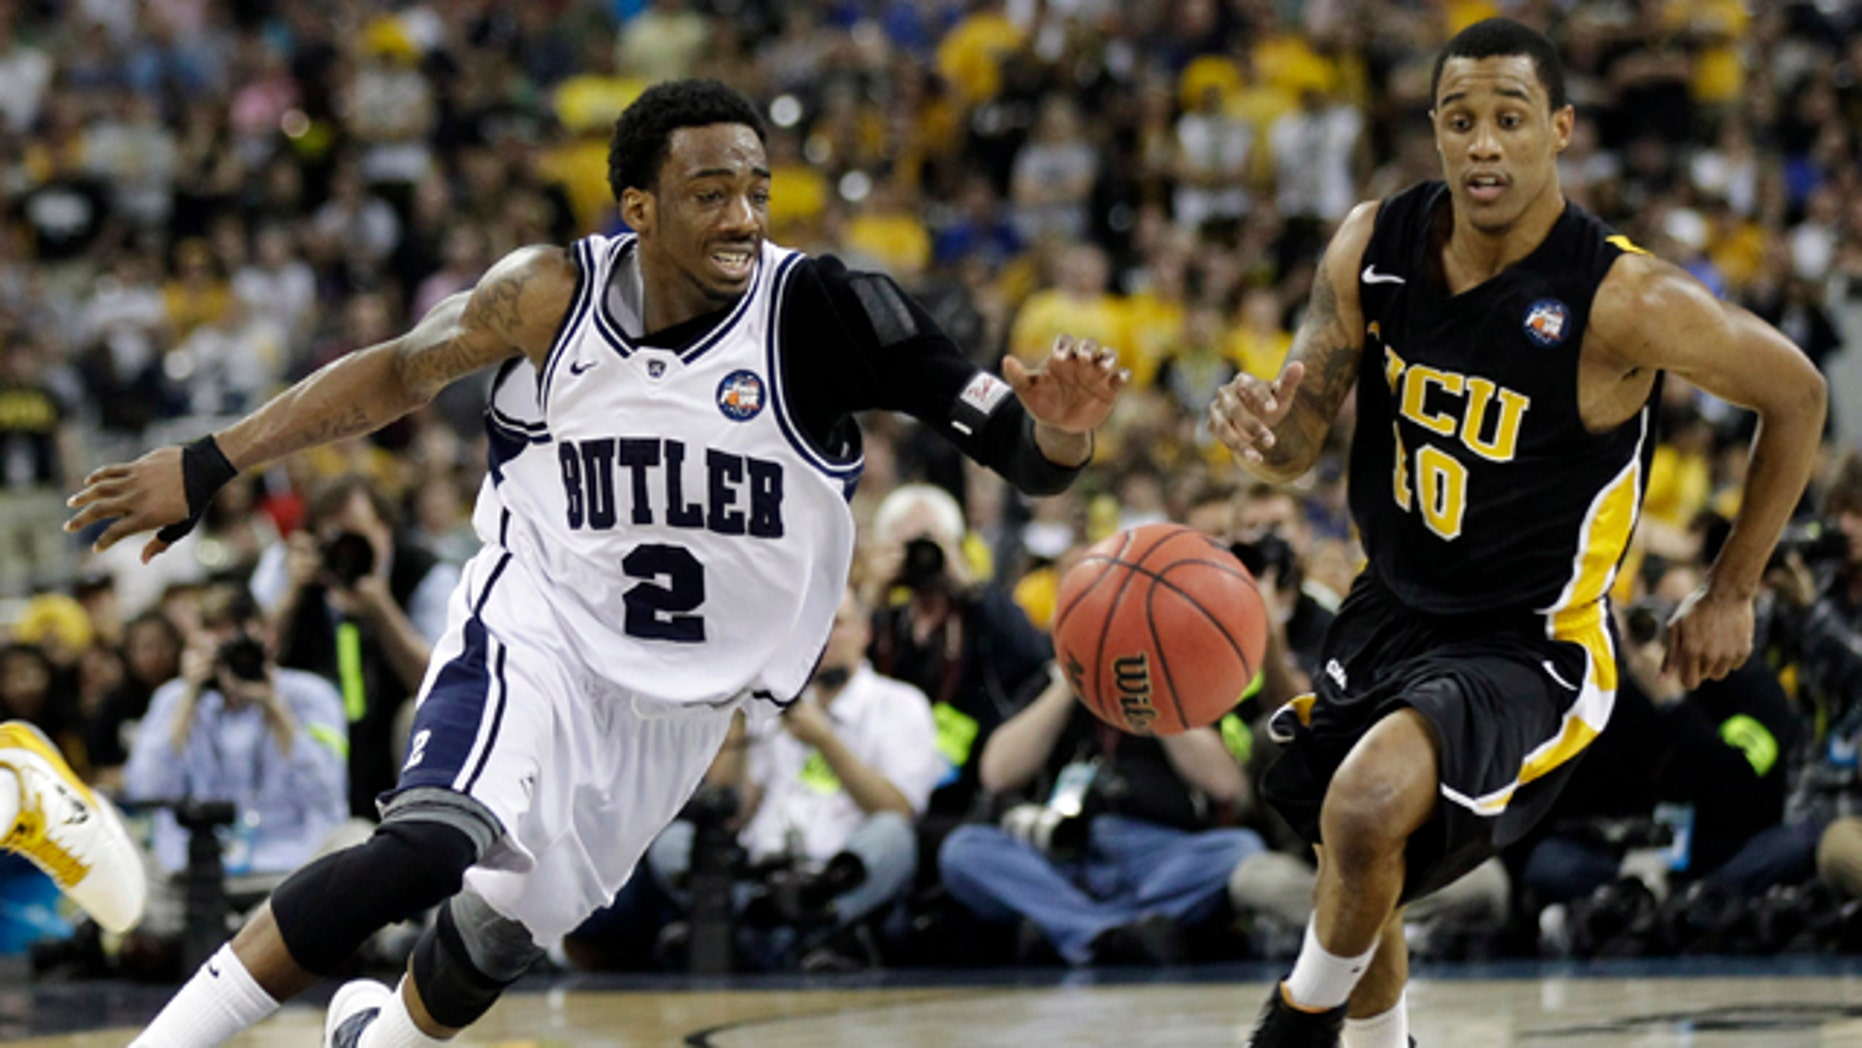 April 2: Butler's Shawn Vanzant and Virginia Commonwealth's Darius Theus chase a loose ball during the second half of a men's NCAA Final Four semifinal college basketball game